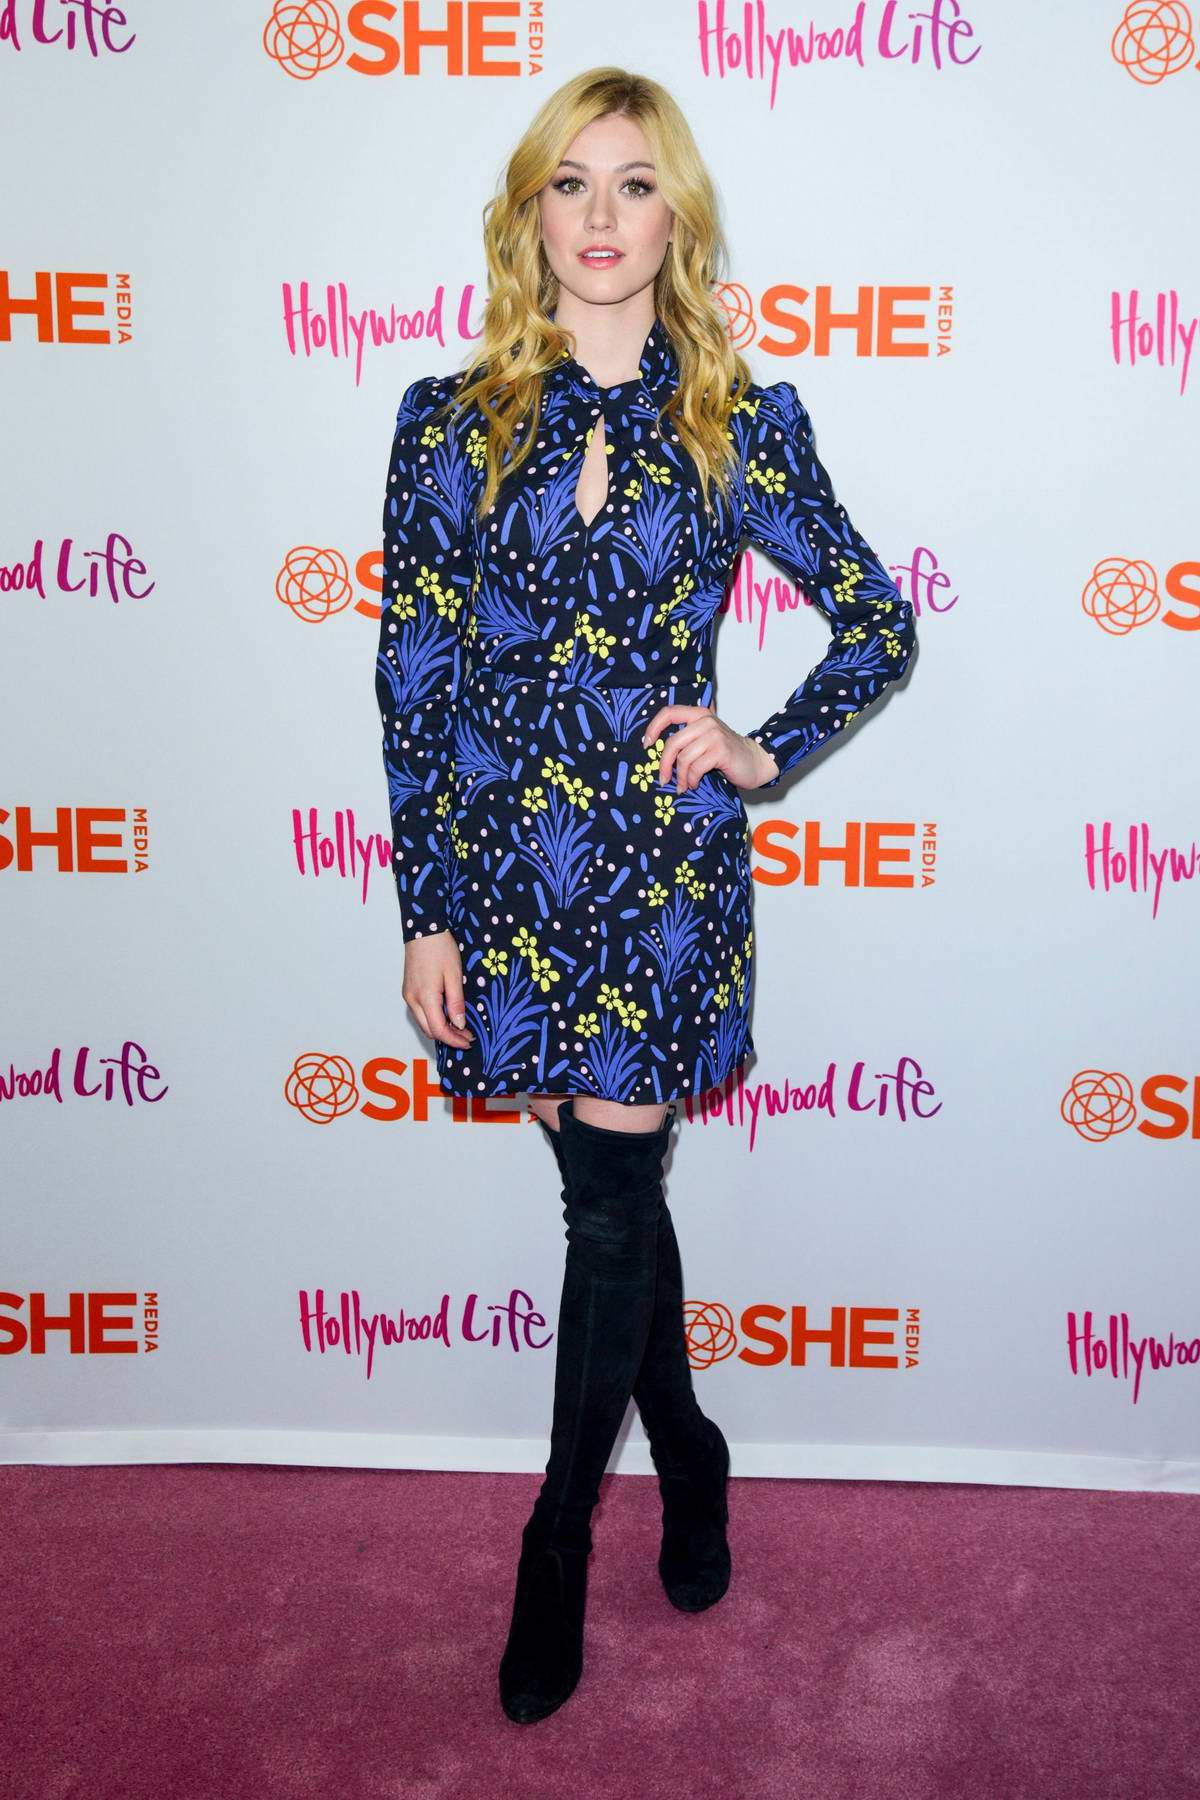 Katherine McNamara attends #BlogHer19 Creators Summit at Brooklyn EXPO Center in New York City